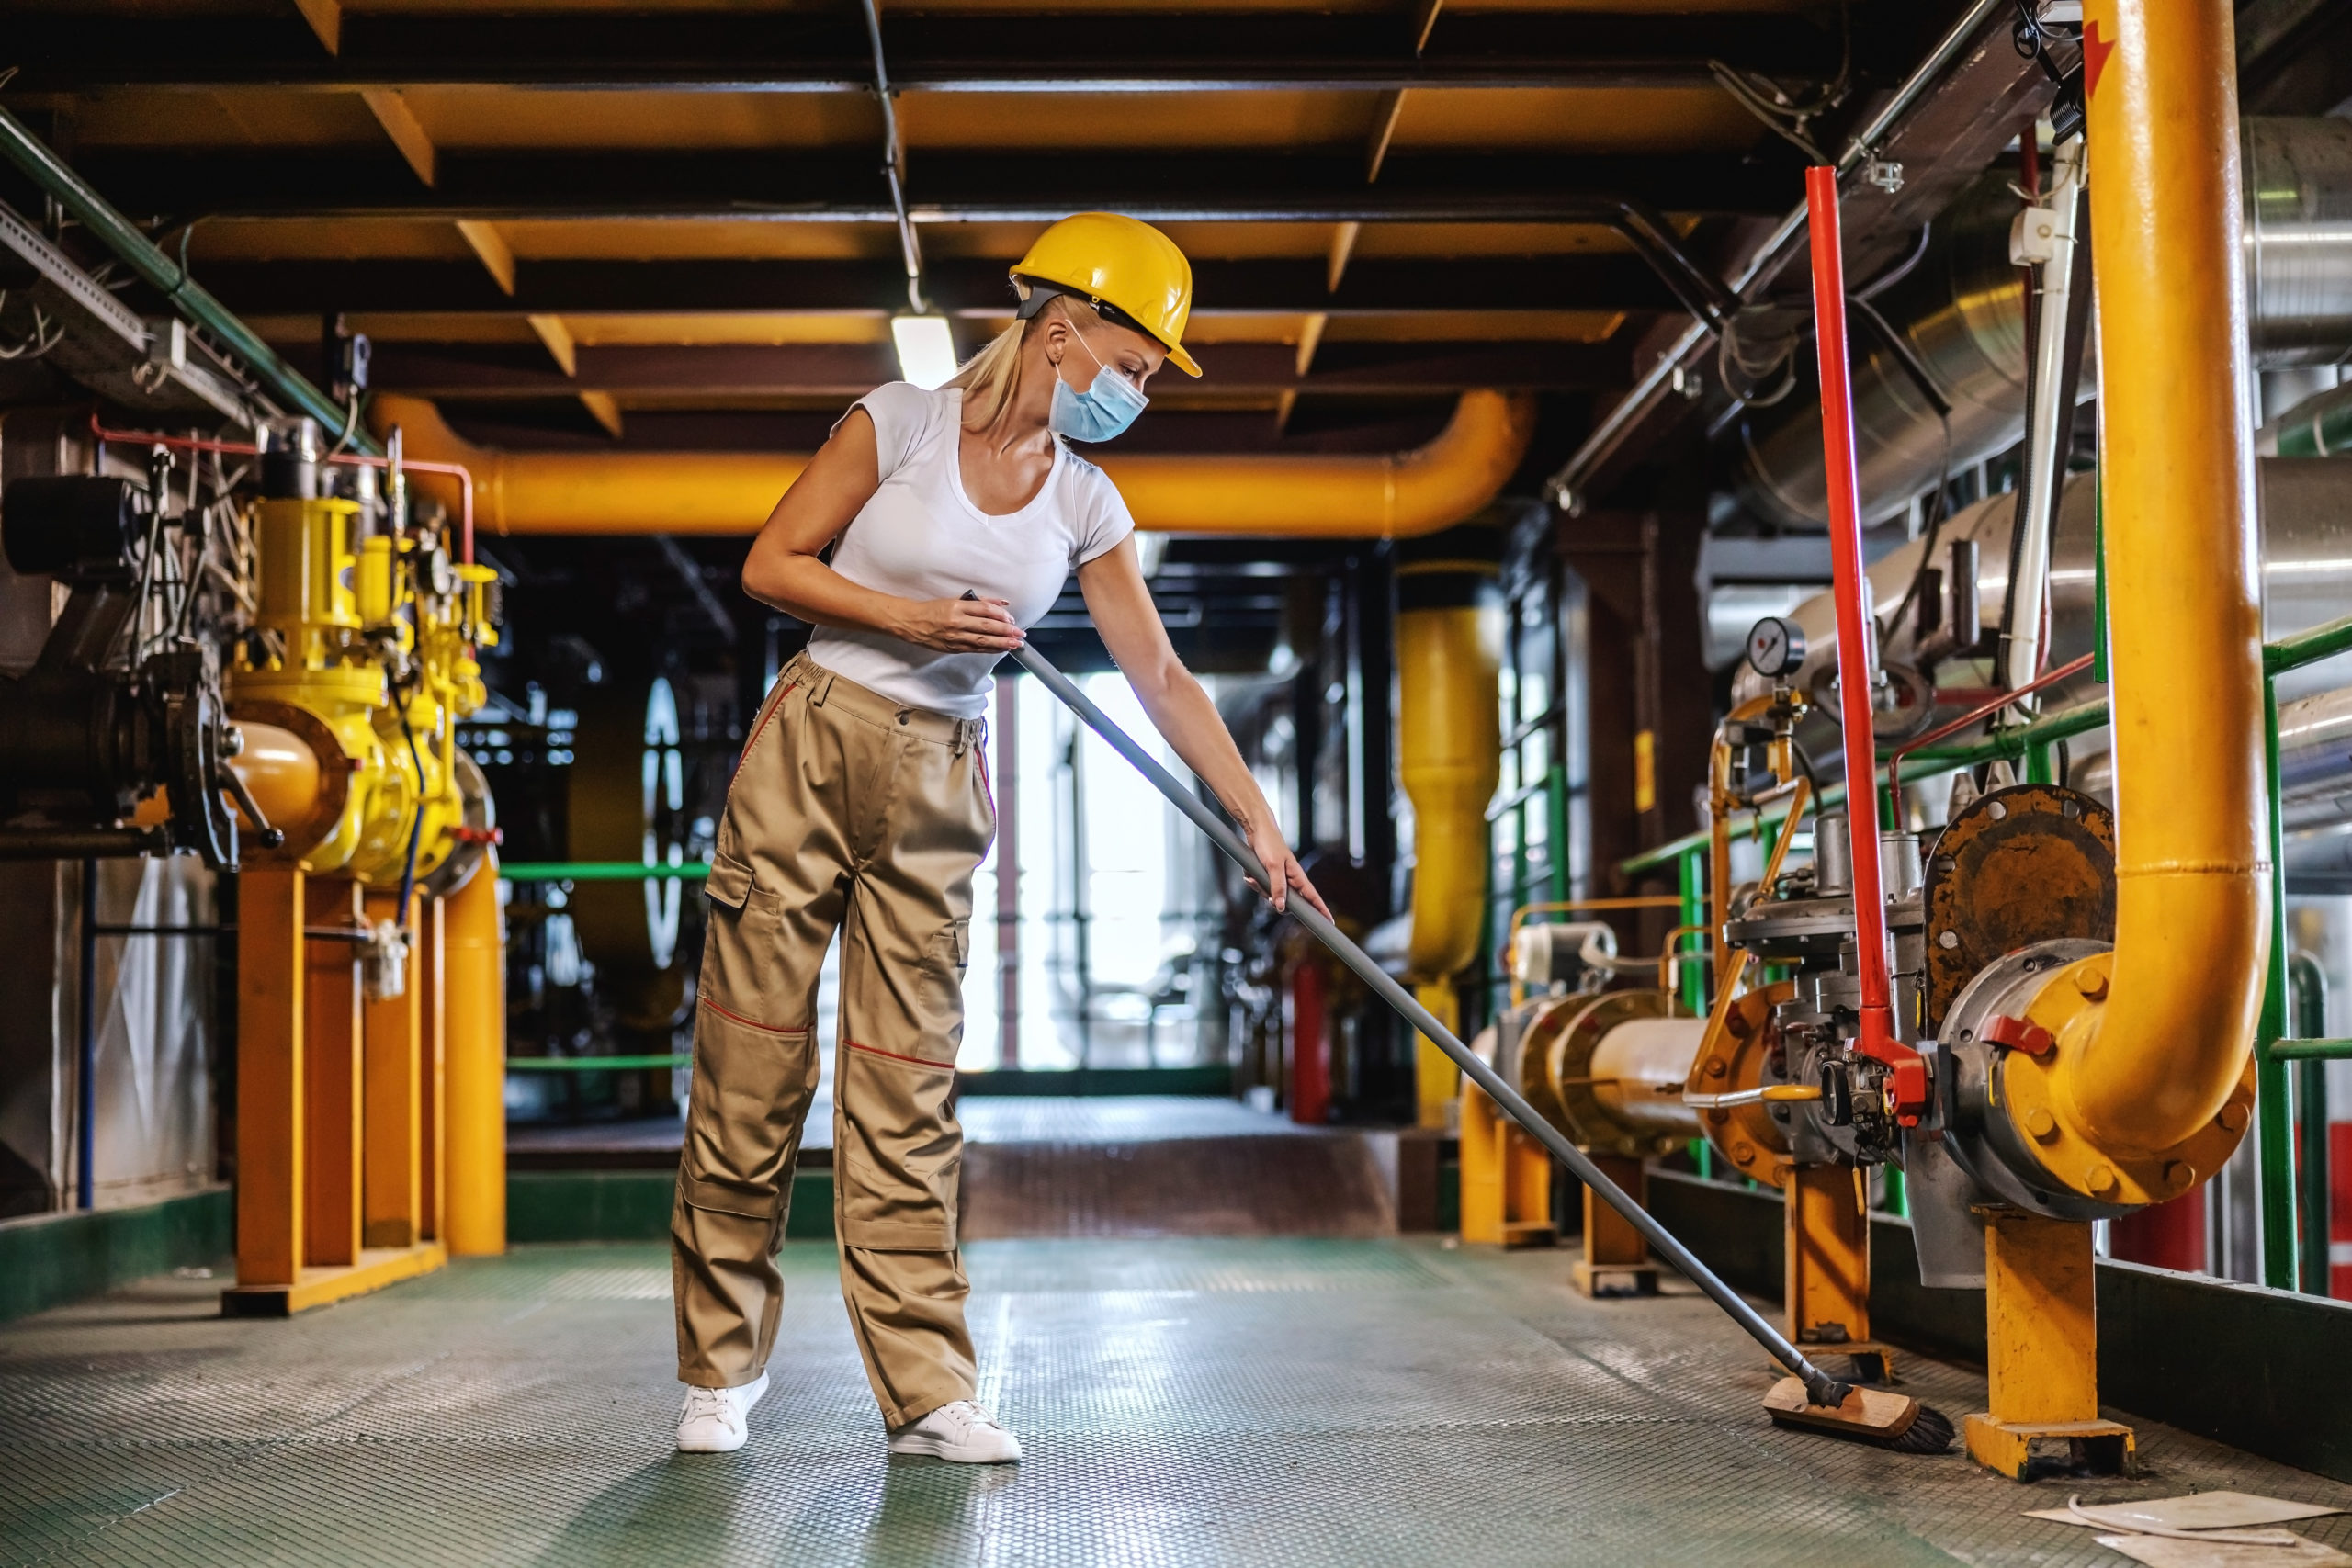 Tidy hardworking female worker in working suit with protective helmet on head and face mask brooms heating plant facility during corona outbreak.